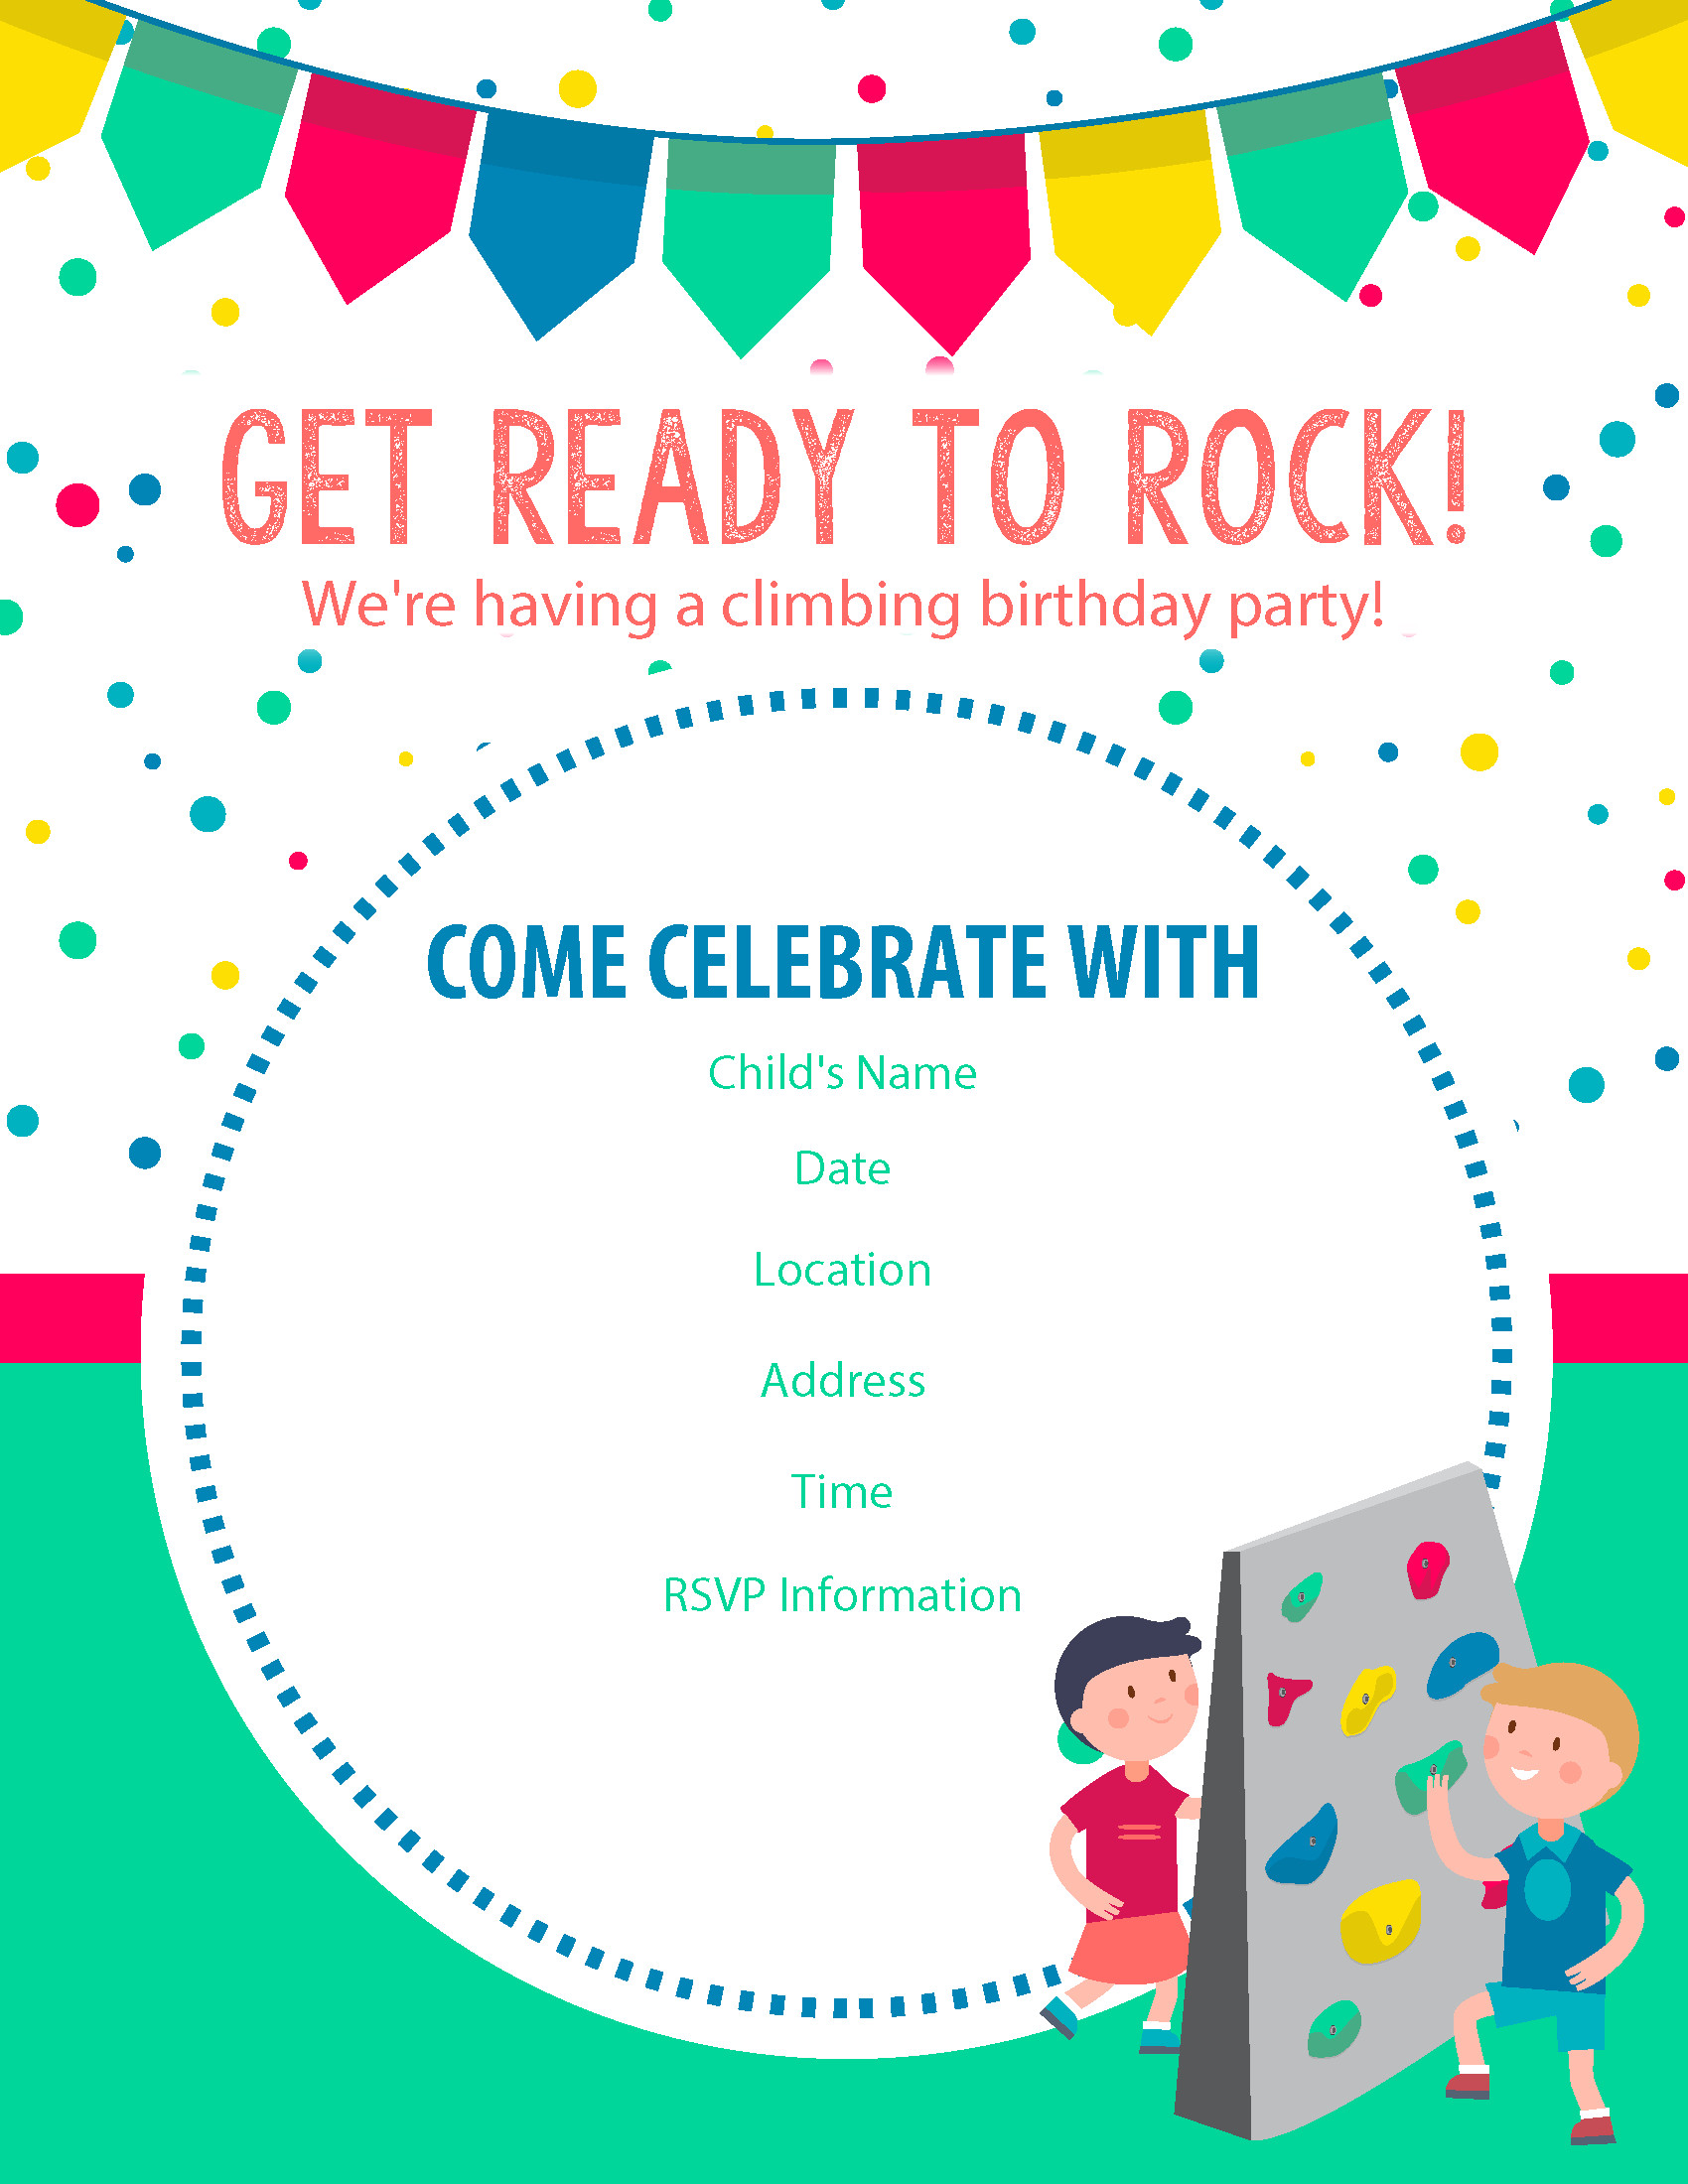 Best ideas about Invitation For Birthday Party . Save or Pin Happy Birthday Free Rock Climbing Birthday Party Invitations Now.